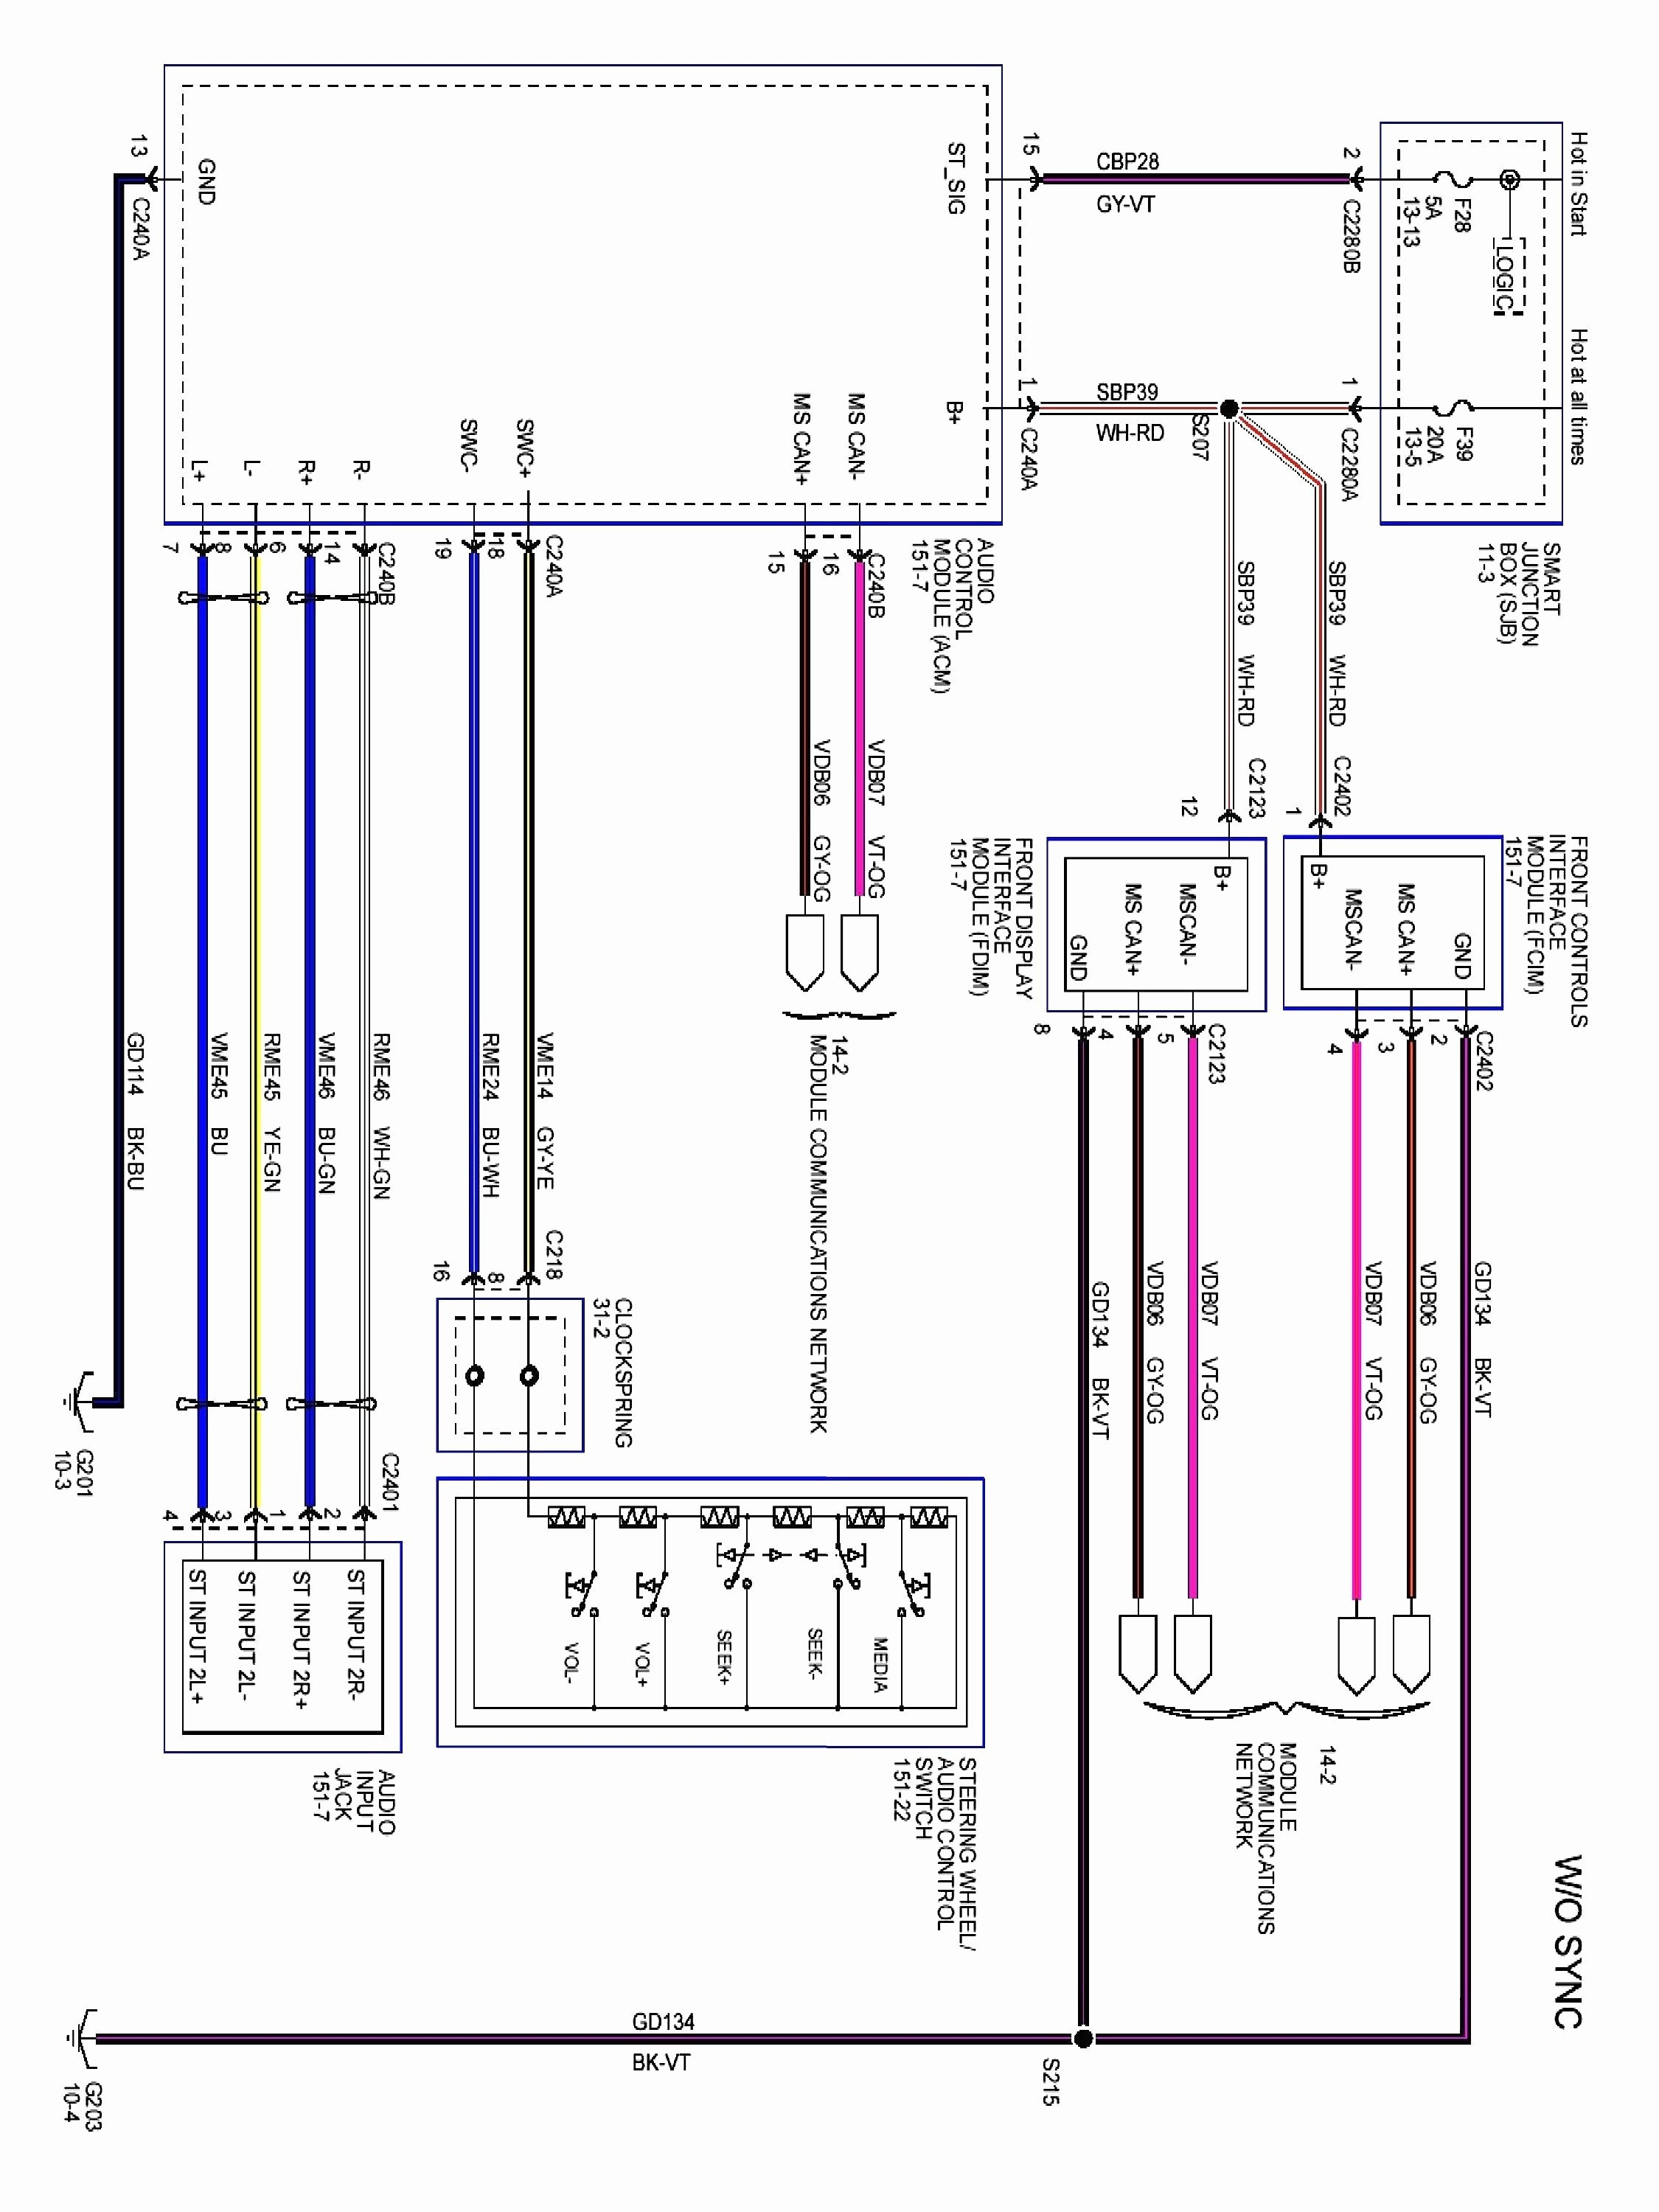 Car Chassis Diagram Wiring Diagram Booster Amplifier Refrence 50 Amp Wiring Diagram Of Car Chassis Diagram